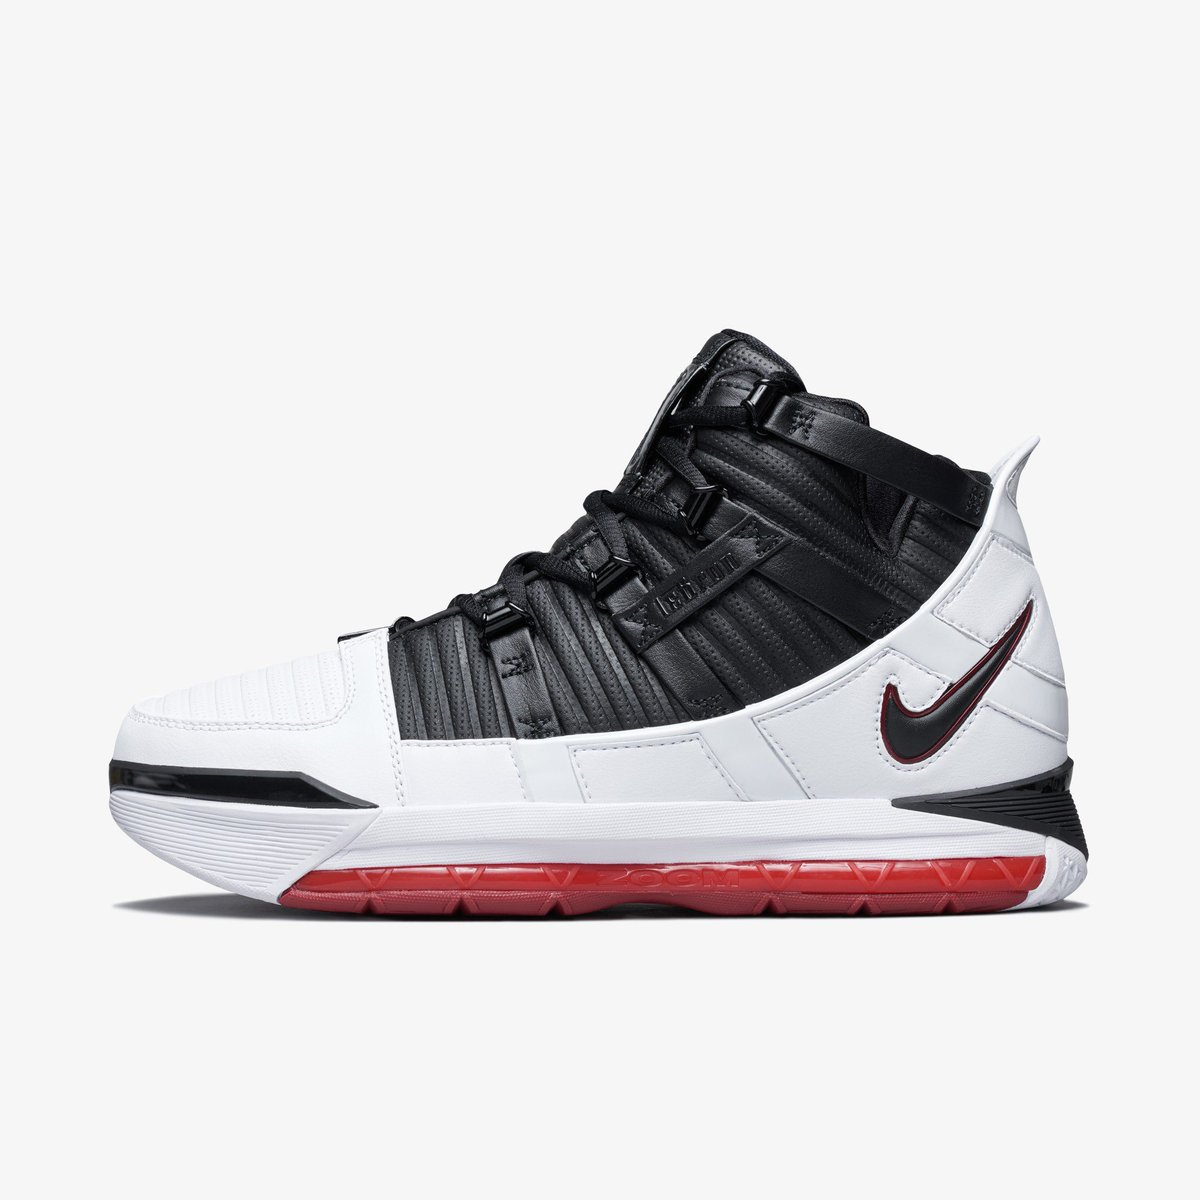 6f65eebe0417 nike zoom lebron 3 home expected to release in early february for 175 h t  j23app